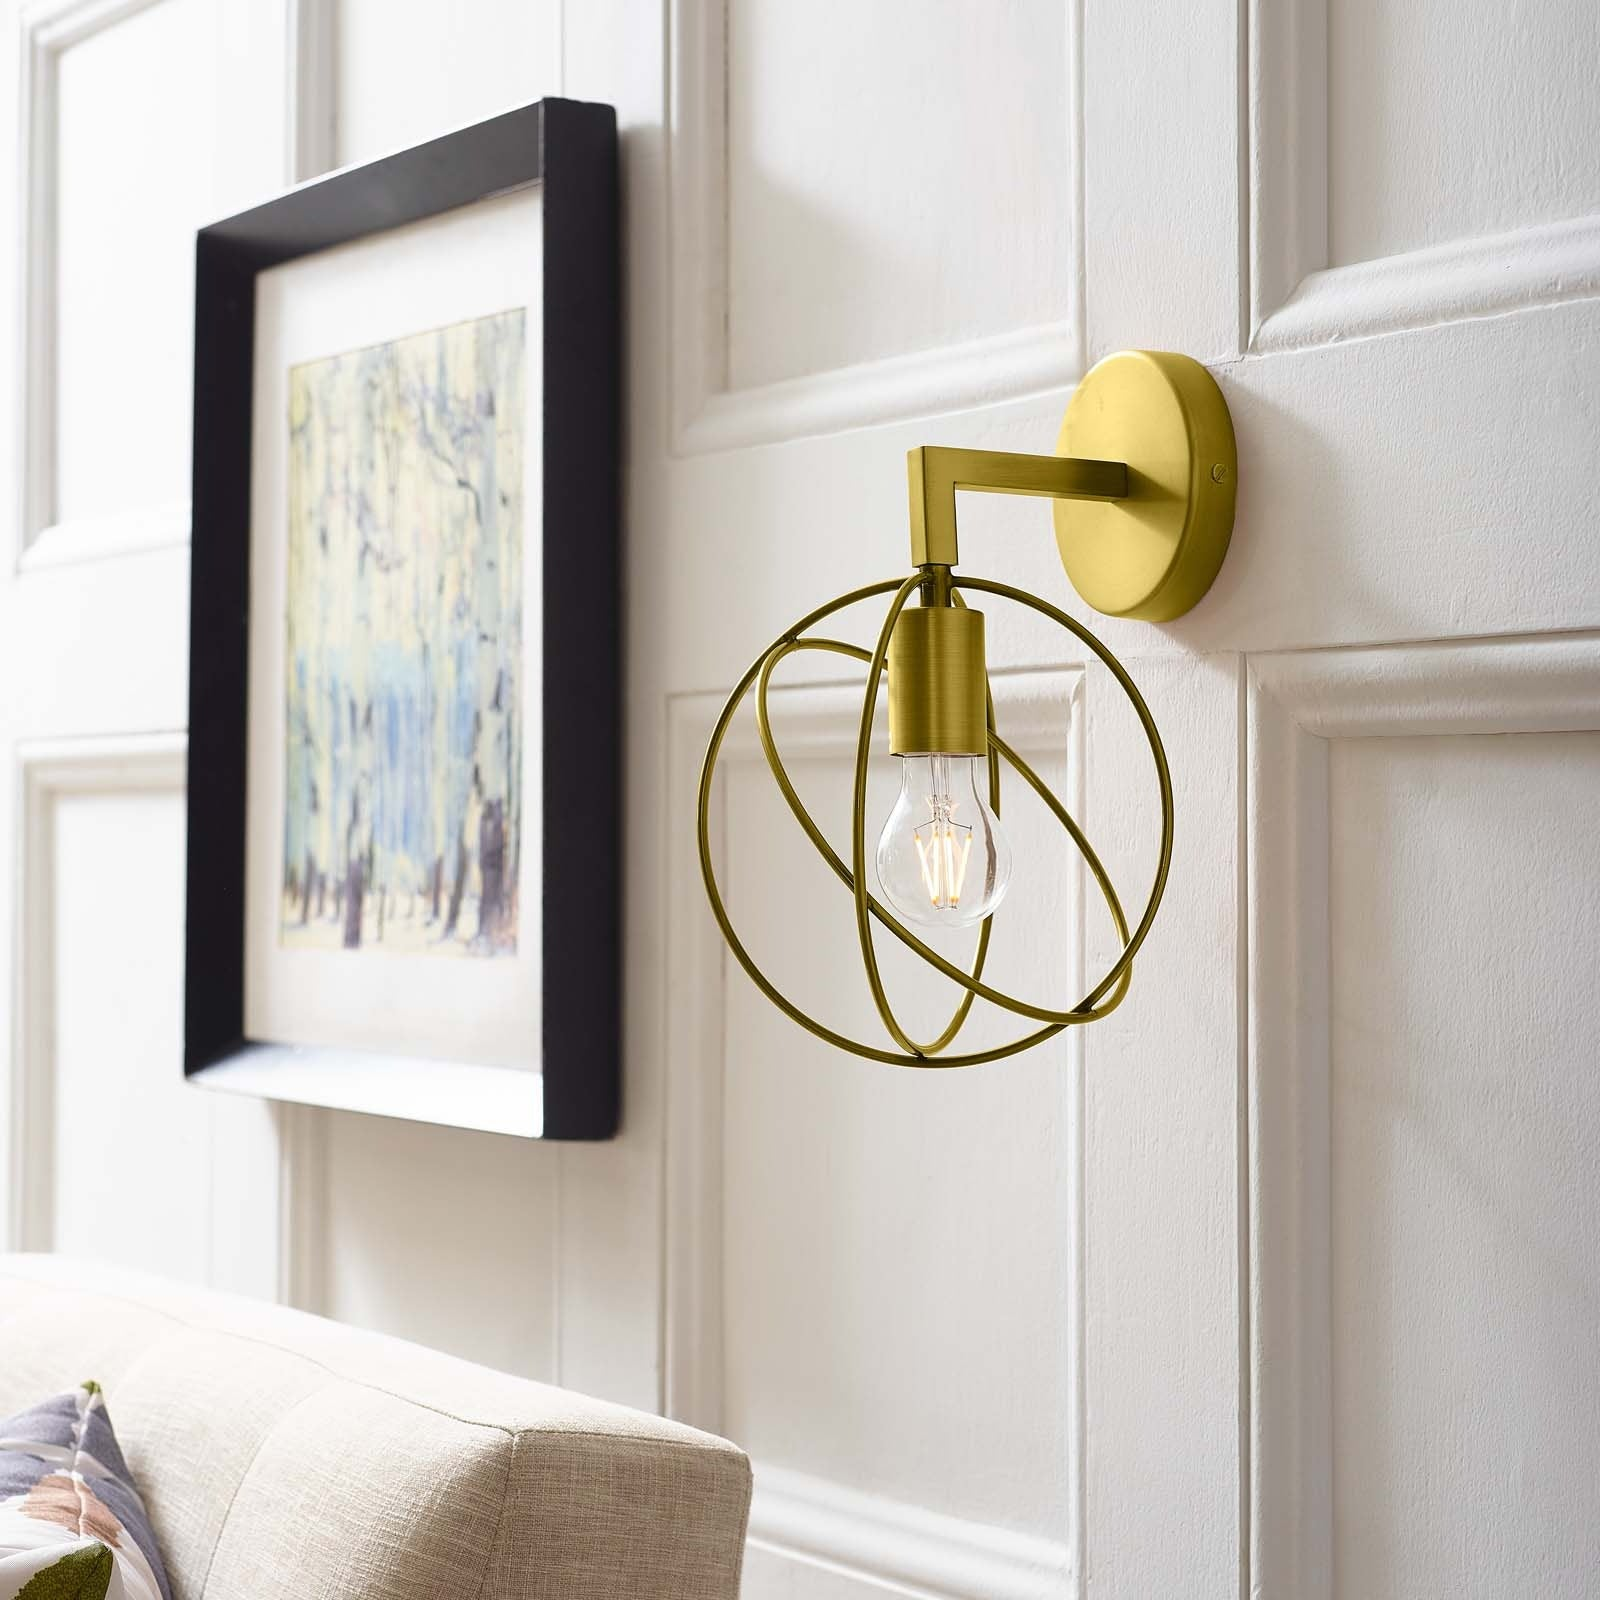 Perimeter Brass Wall Sconce Light Fixture -